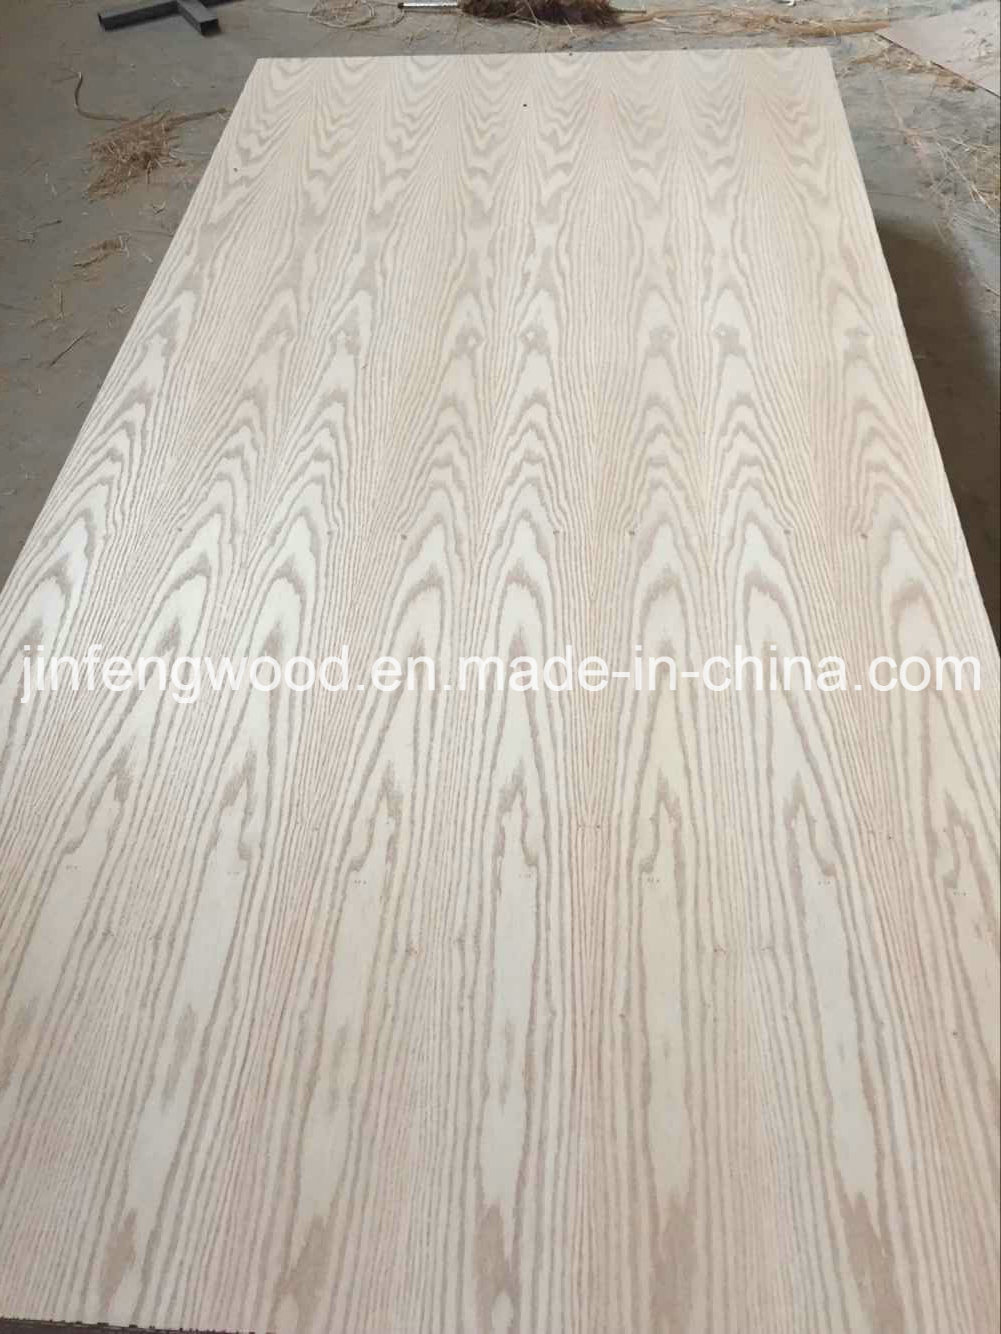 Natural Veneer Blockboard MDF Plywood 1220*2440*18mm pictures & photos